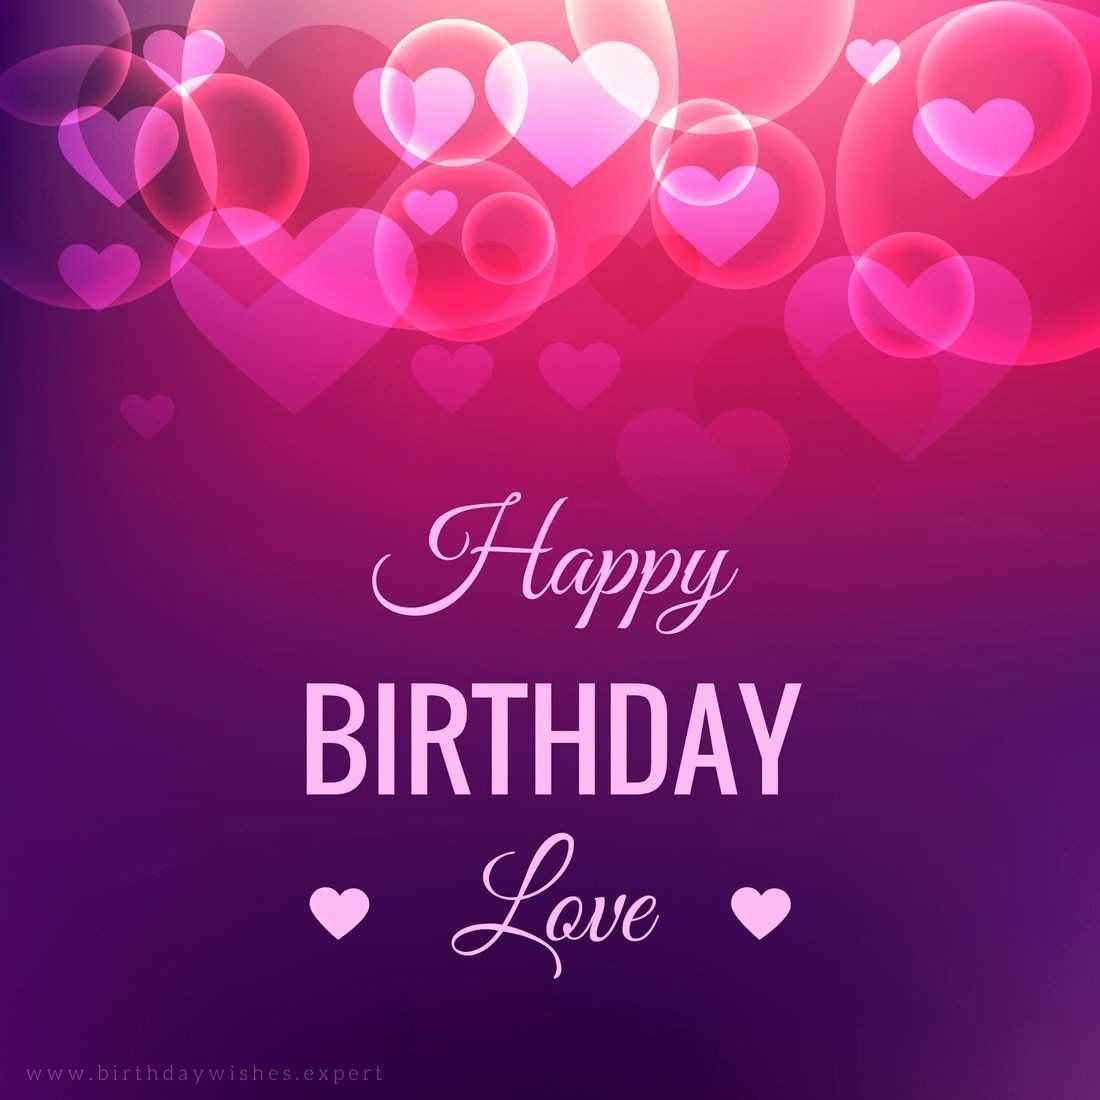 birthday wishes graphics ; birthday-wishes-for-fiance-lovely-happy-birthday-wishes-for-a-boyfriend-of-birthday-wishes-for-fiance